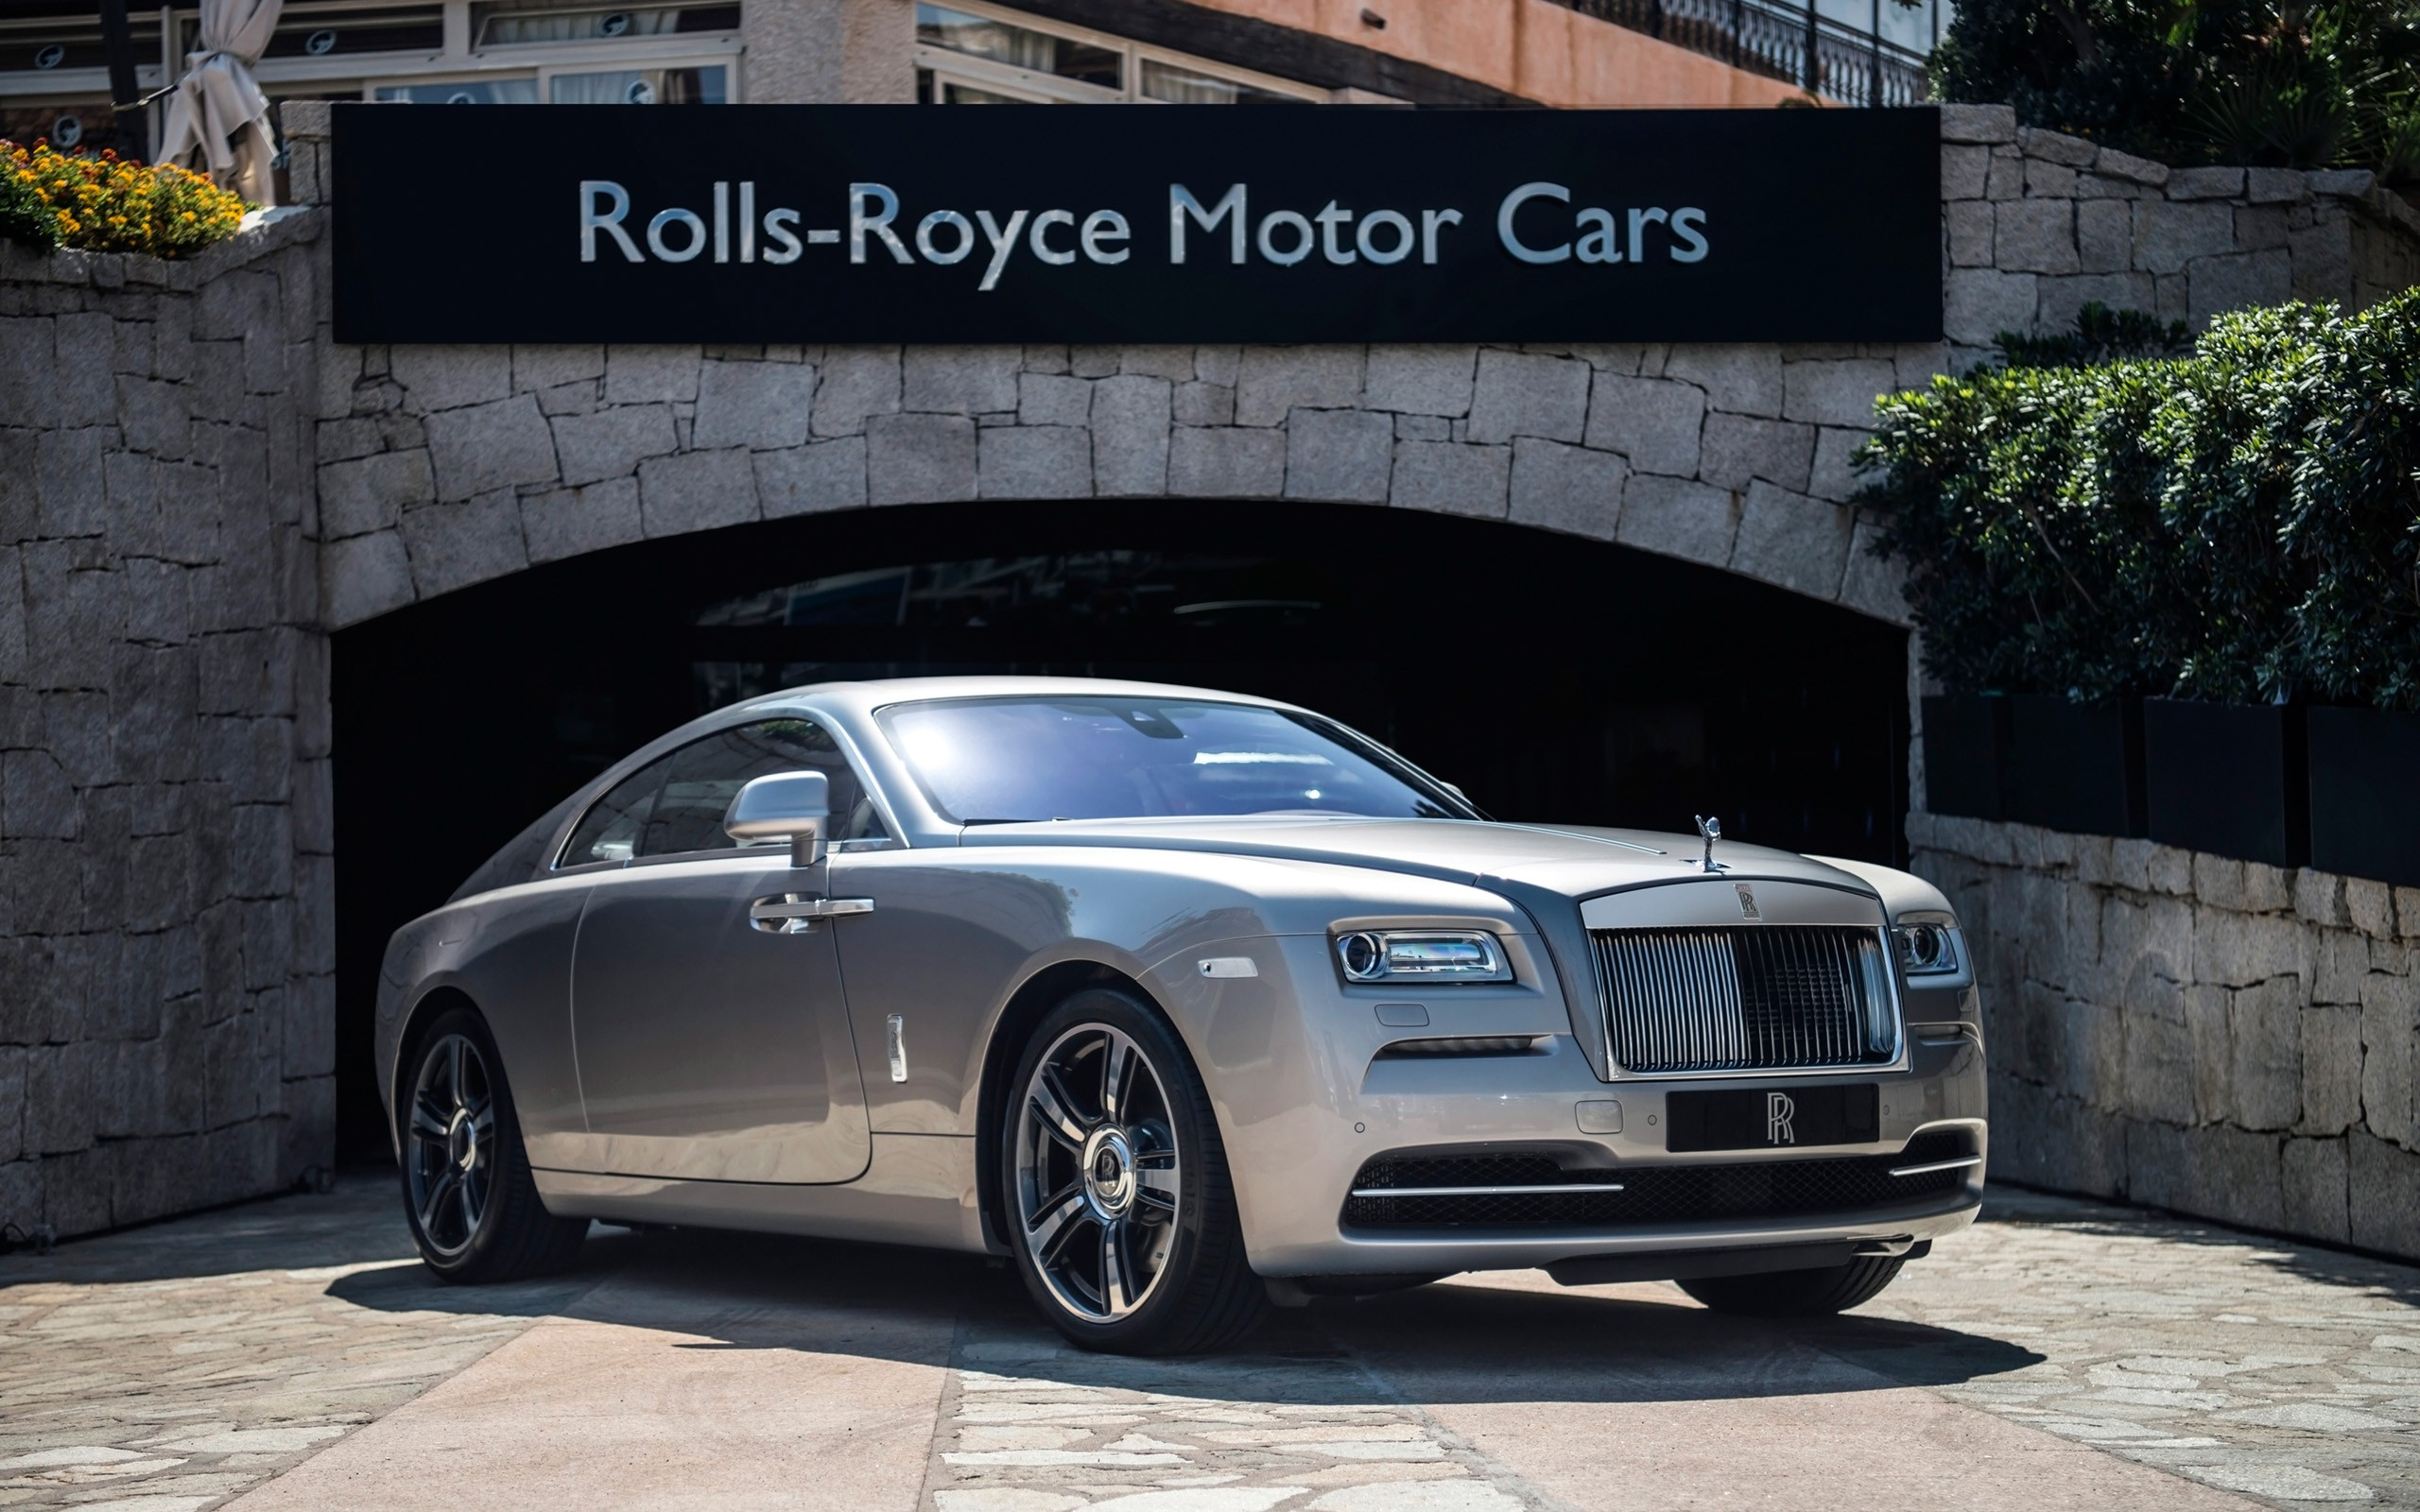 2016 rolls royce wraith porto cervo wallpaper hd car wallpapers id 7013. Black Bedroom Furniture Sets. Home Design Ideas